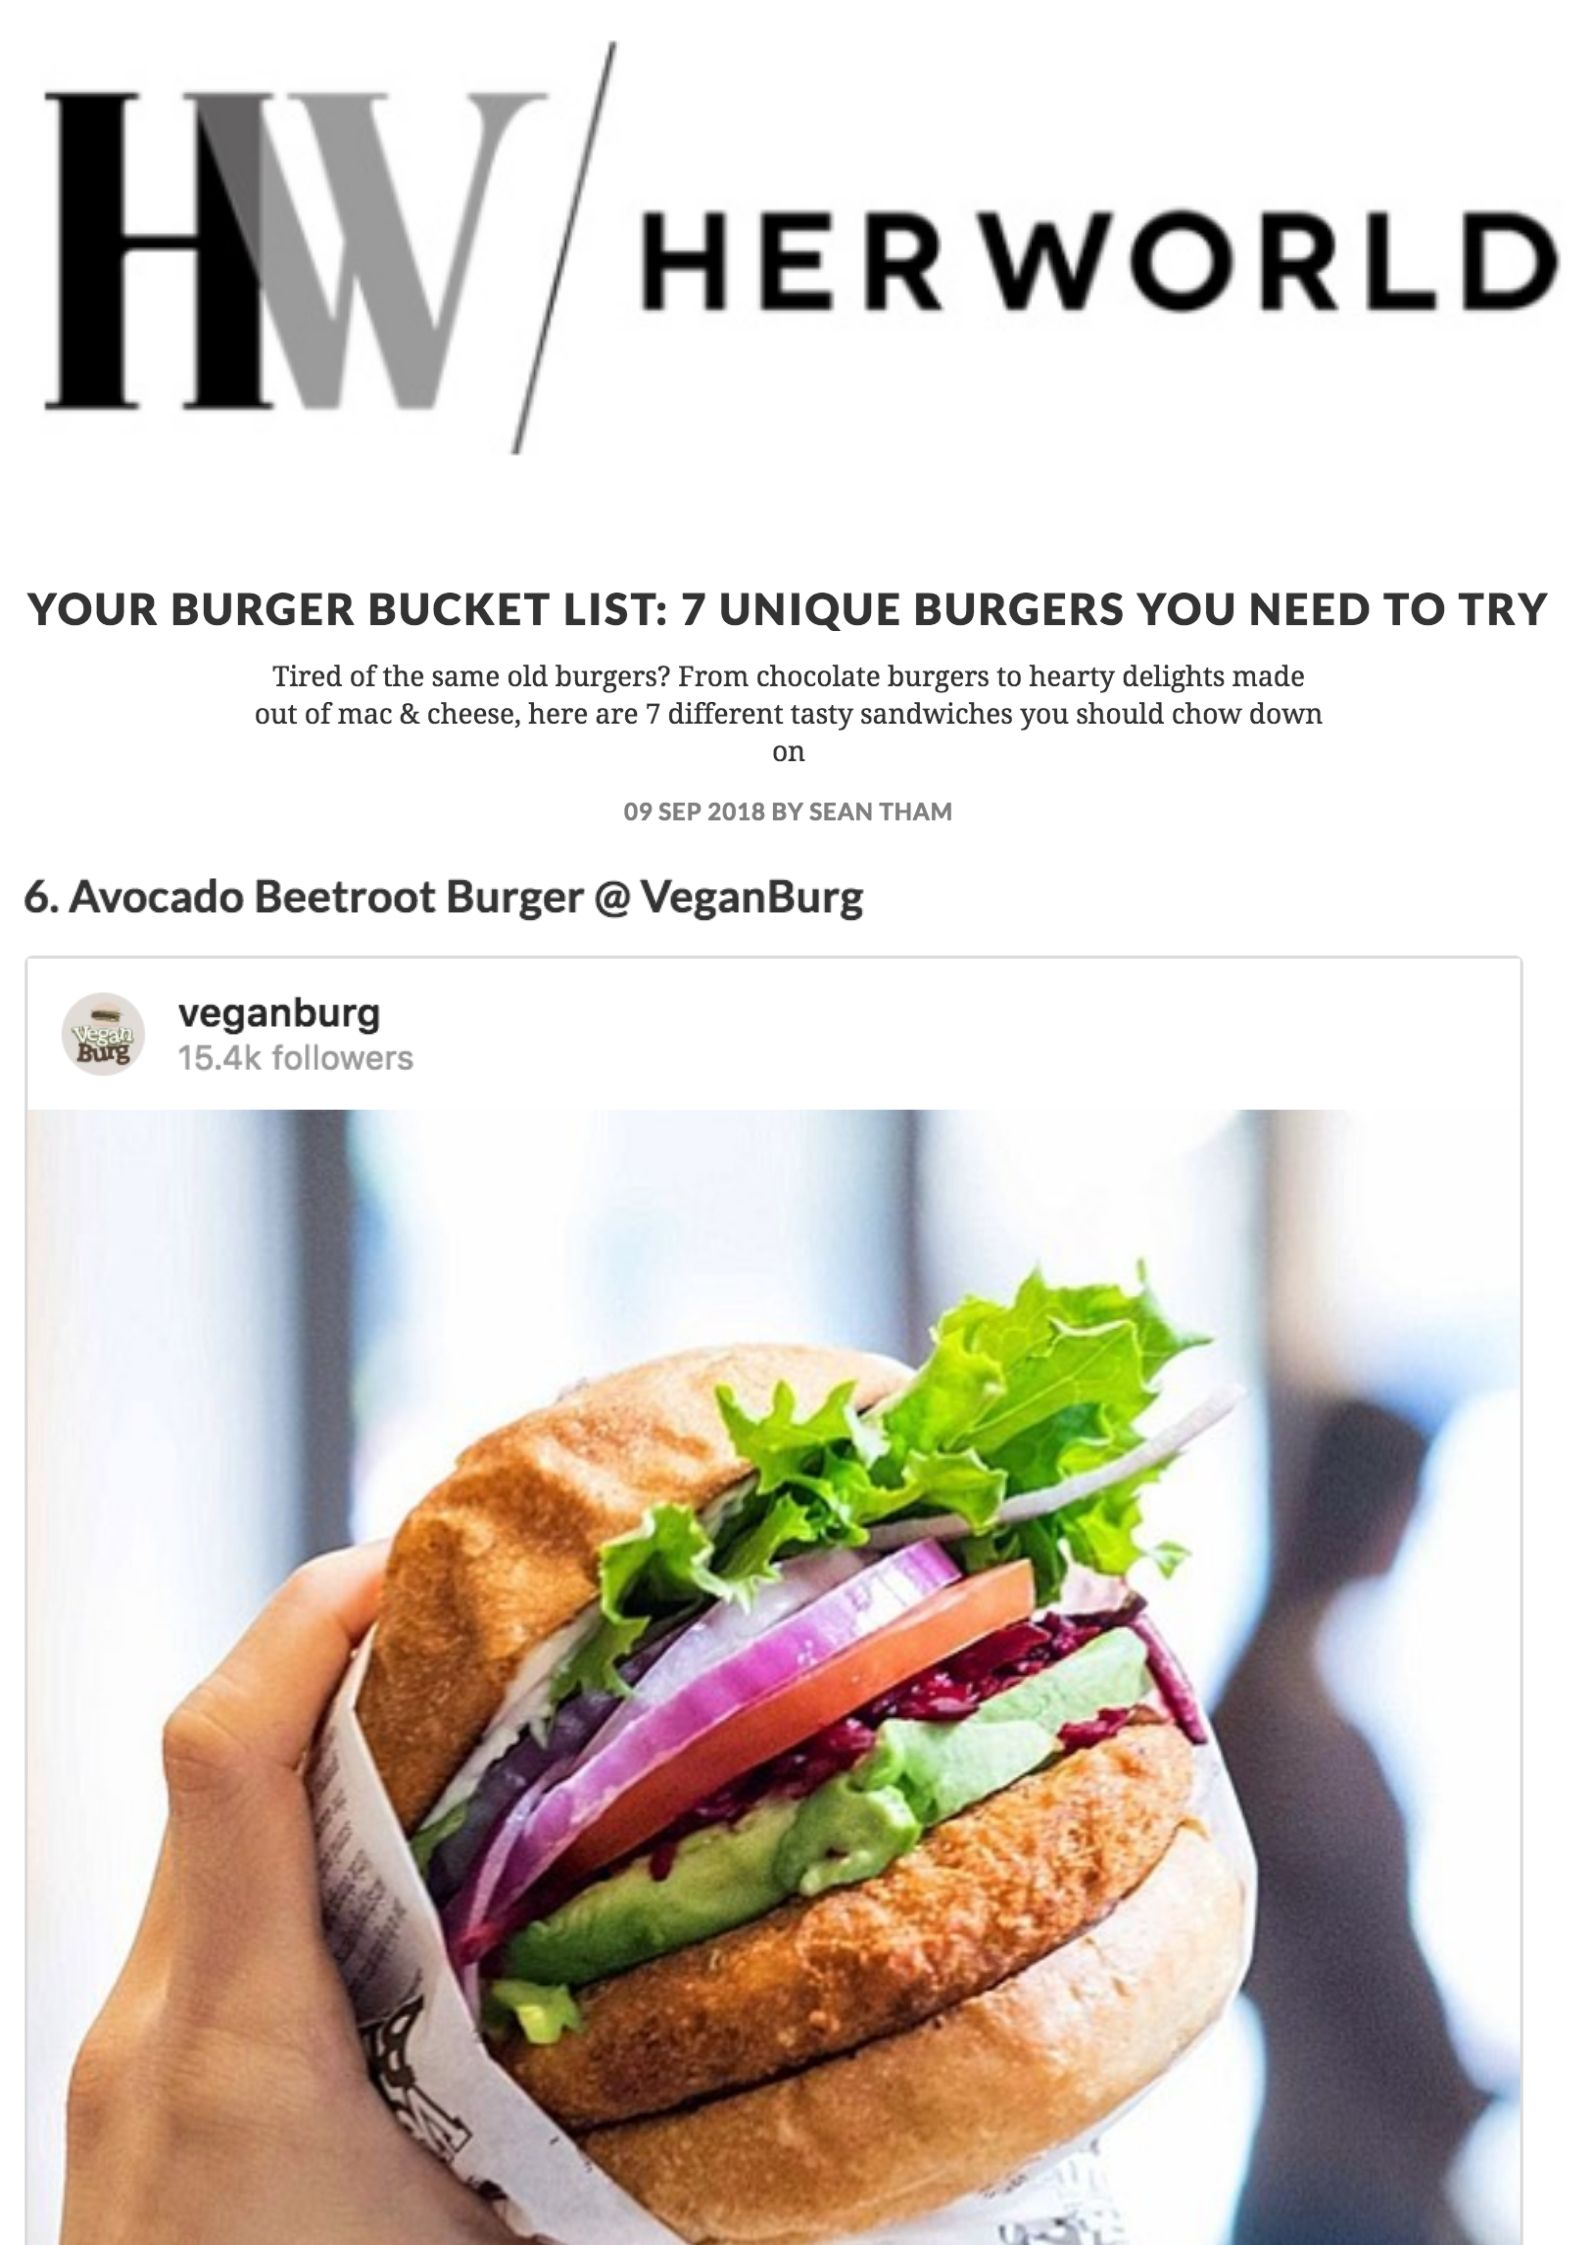 Her World Singapore_ YOUR BURGER BUCKET LIST_ 7 UNIQUE BURGERS YOU NEED TO TRY.jpg